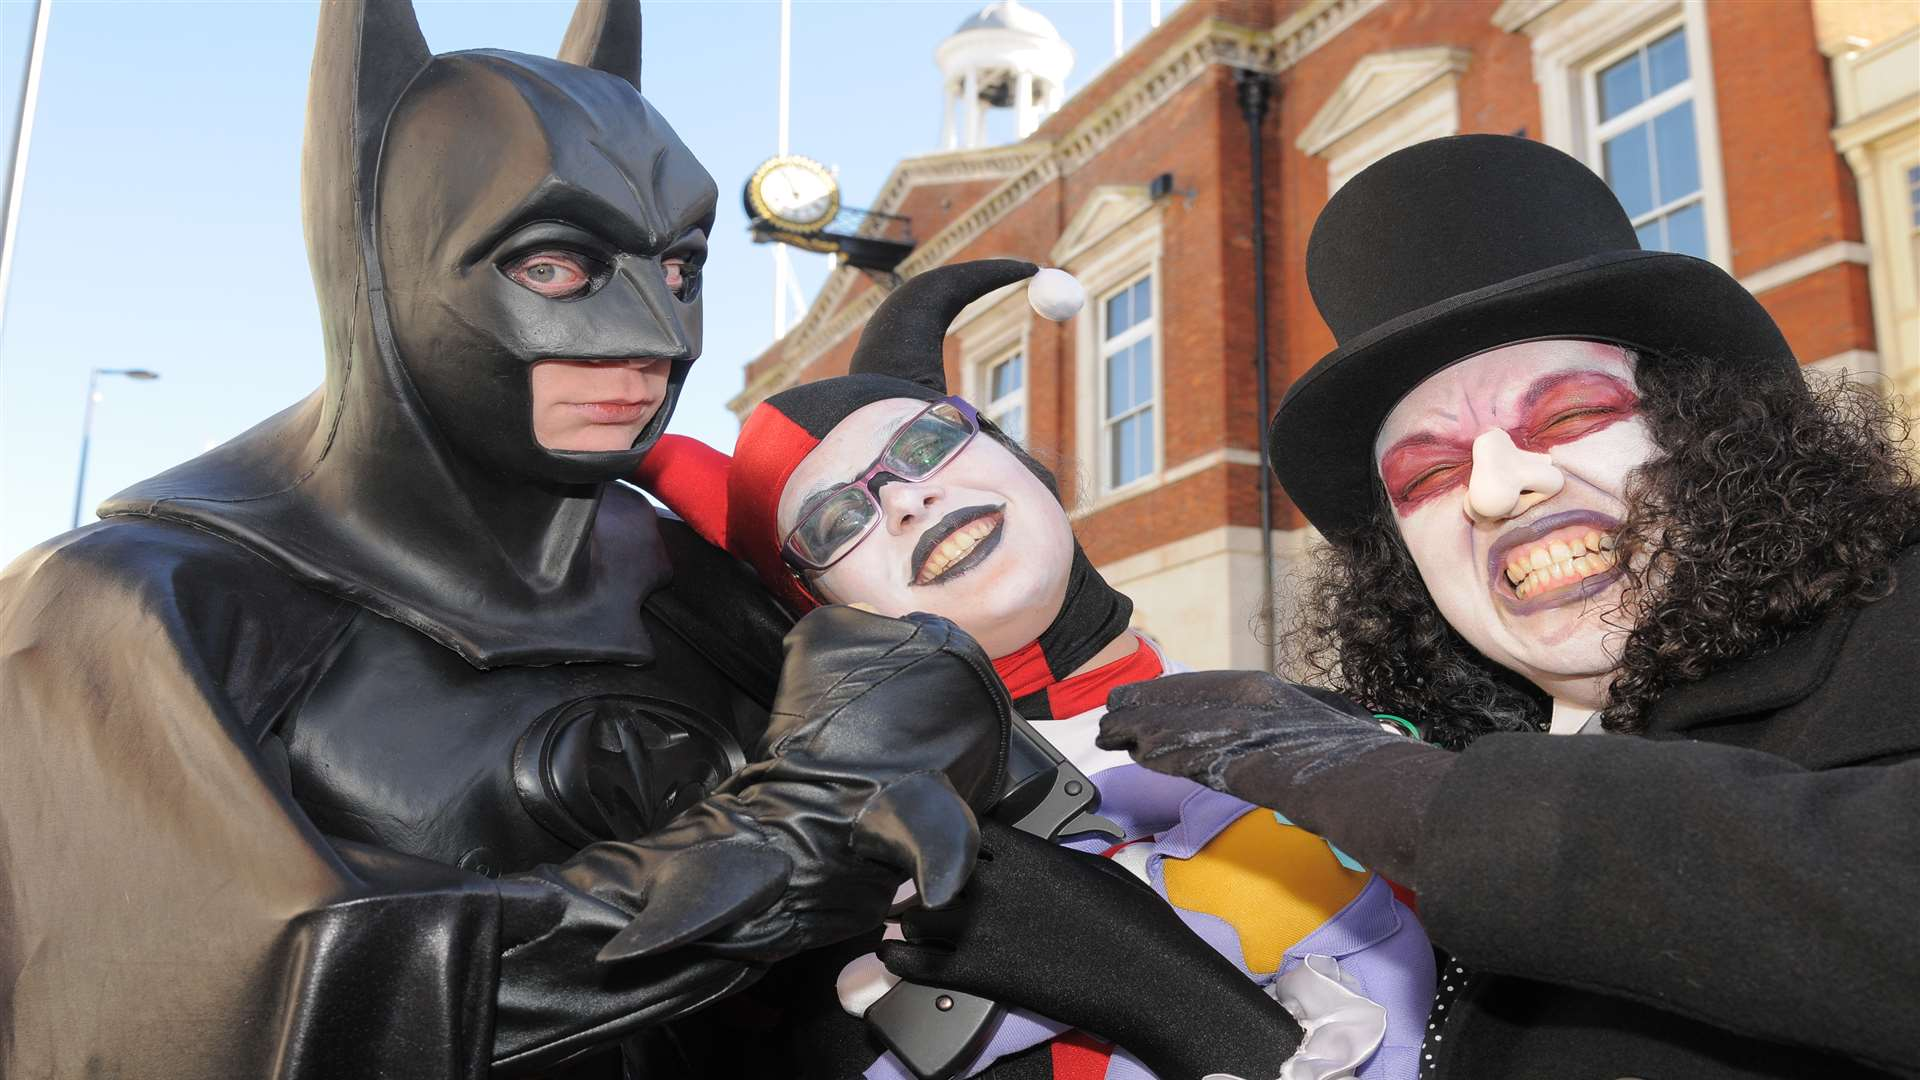 Sci fi characters gather for the Demoncon convention in Maidstone